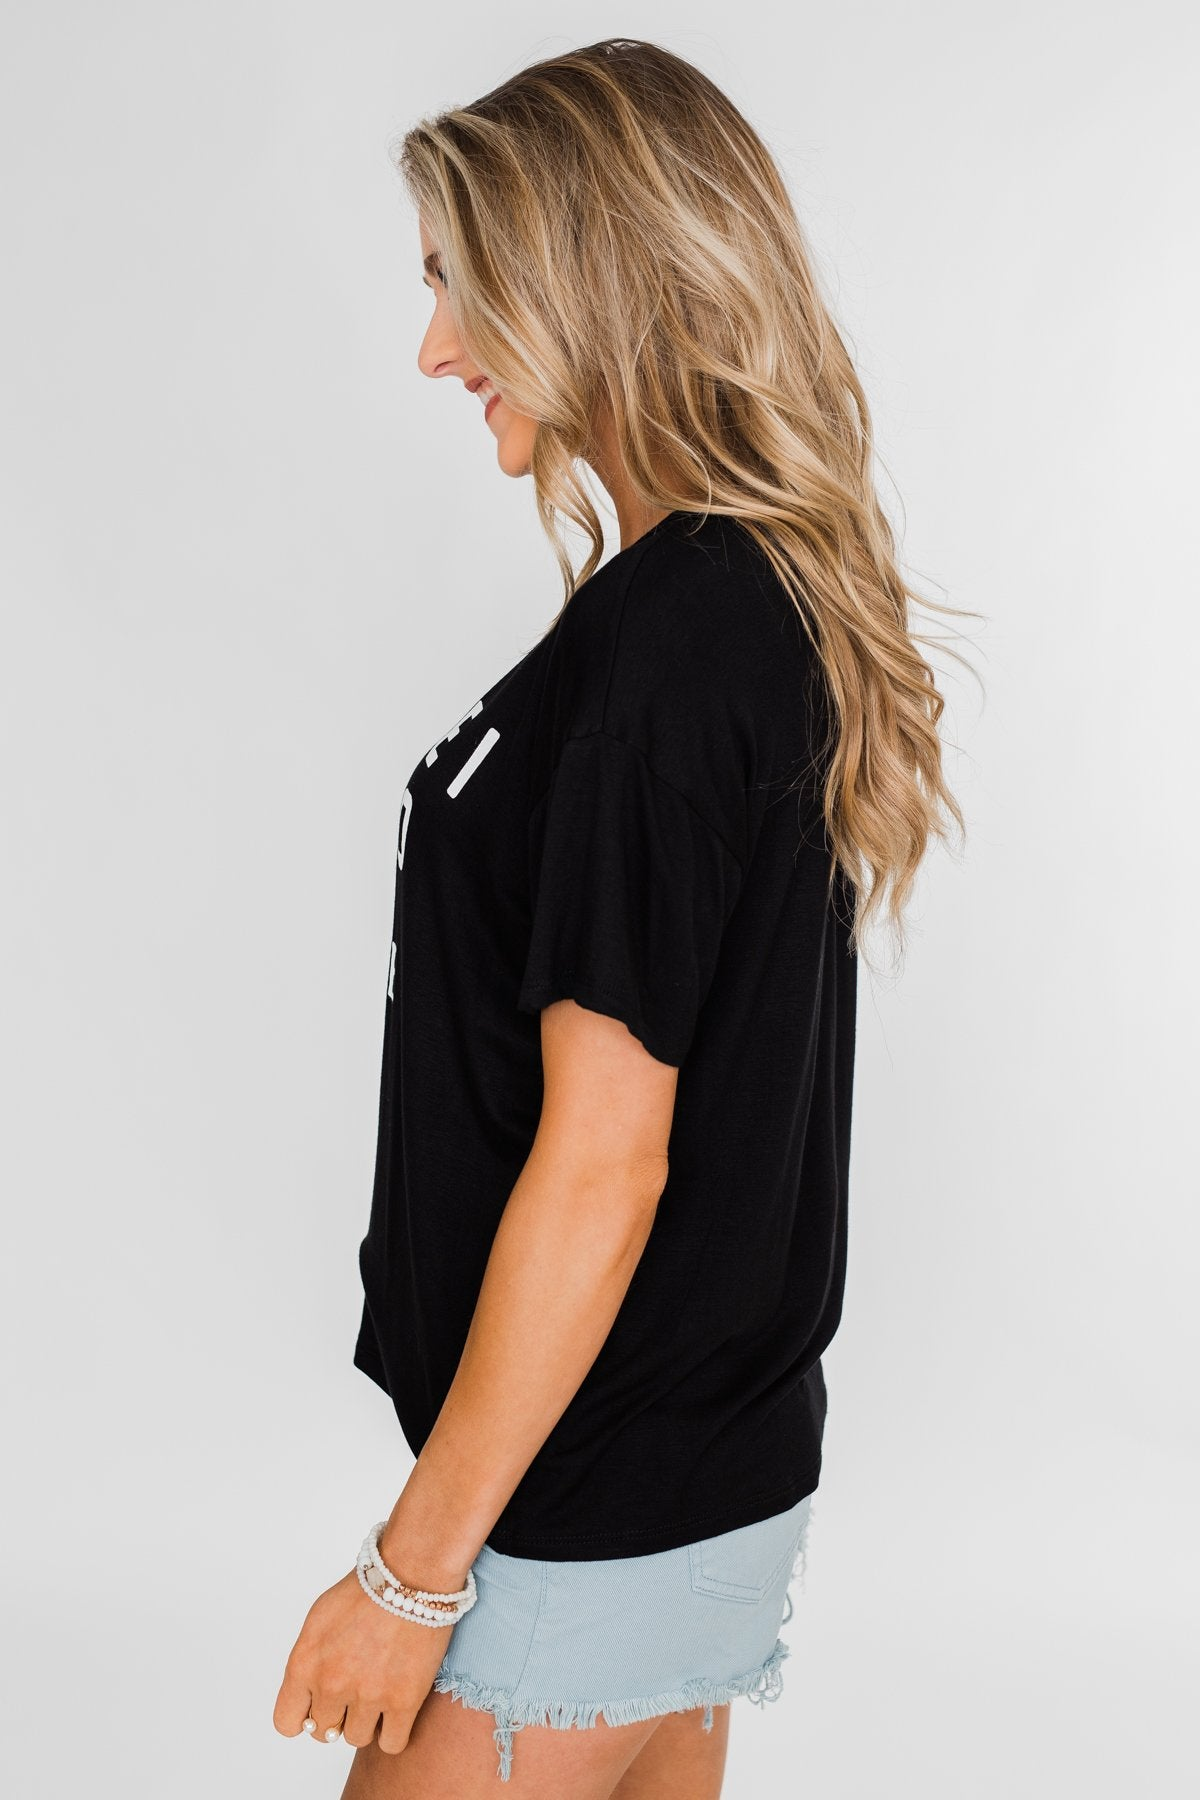 """Because I Said So"" Graphic Short Sleeve Top- Black"